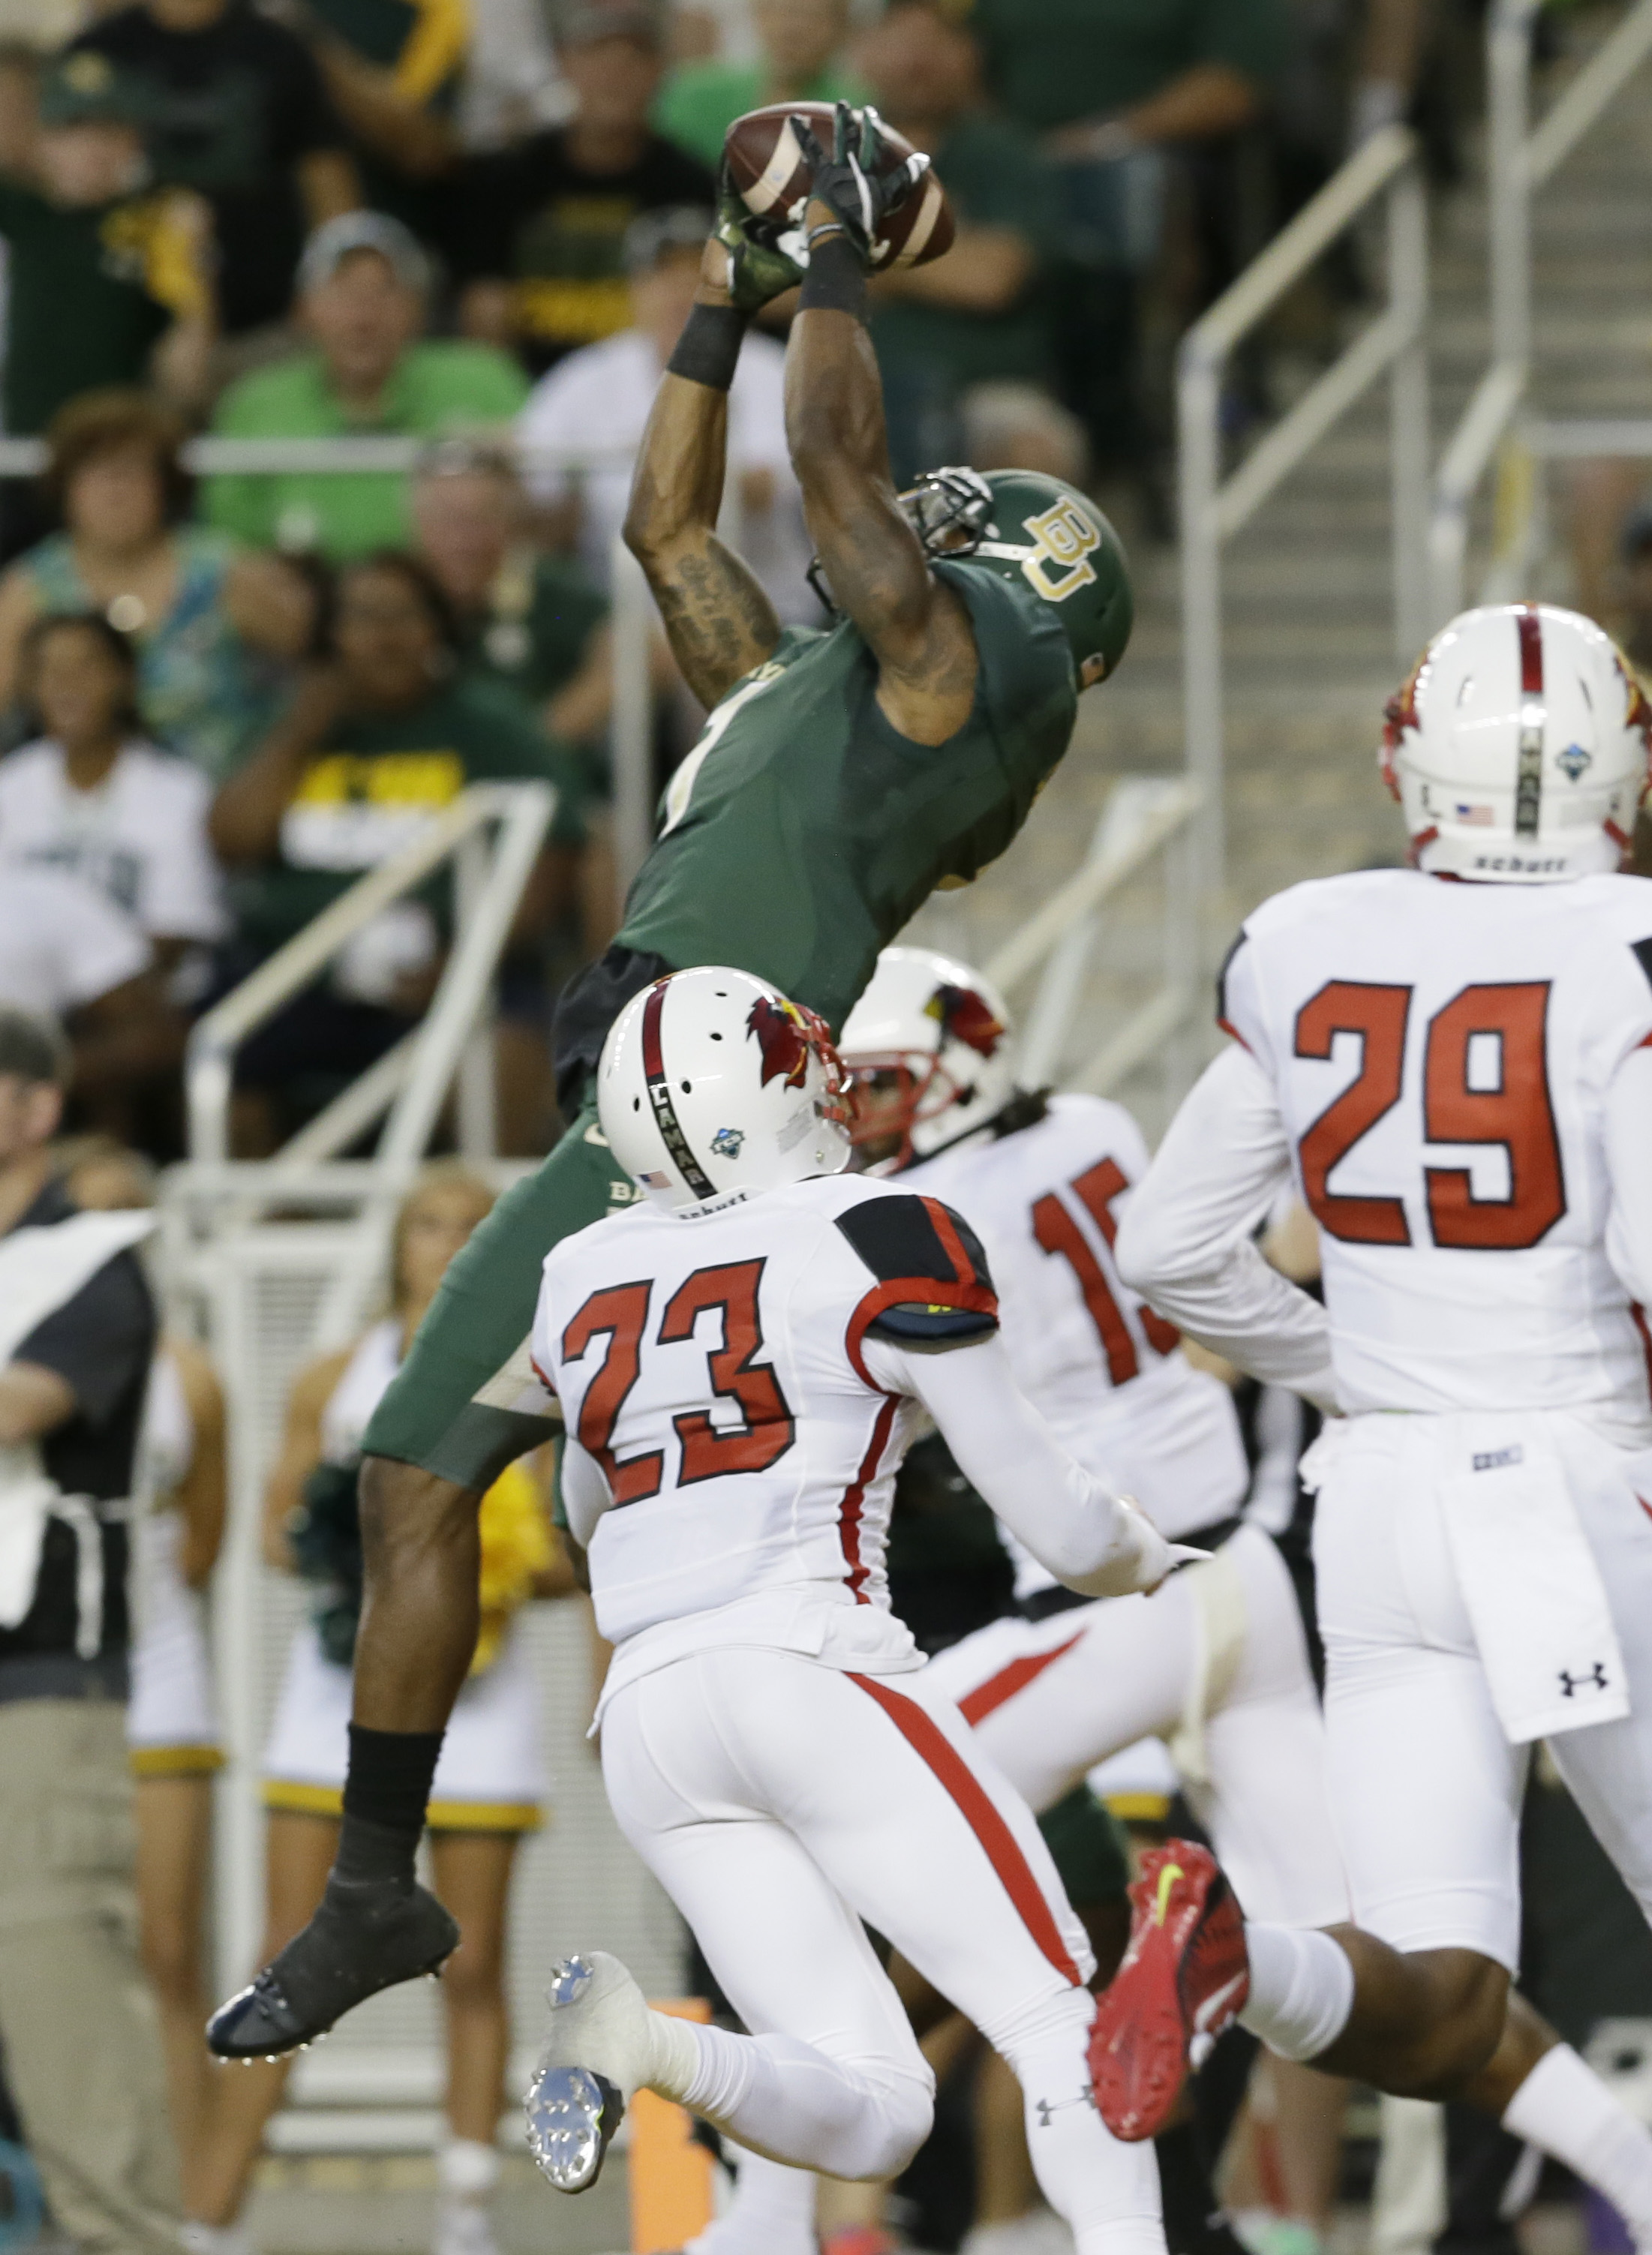 FILE - In this Sept. 12, 2015, file photo, Baylor wide receiver Corey Coleman (1) catches a touchdown pass against Lamar defenders Lloyd Julian (23) and Xavier Bethany (29) during the first half of an NCAA college football game in Waco, Texas. (AP Photo/L